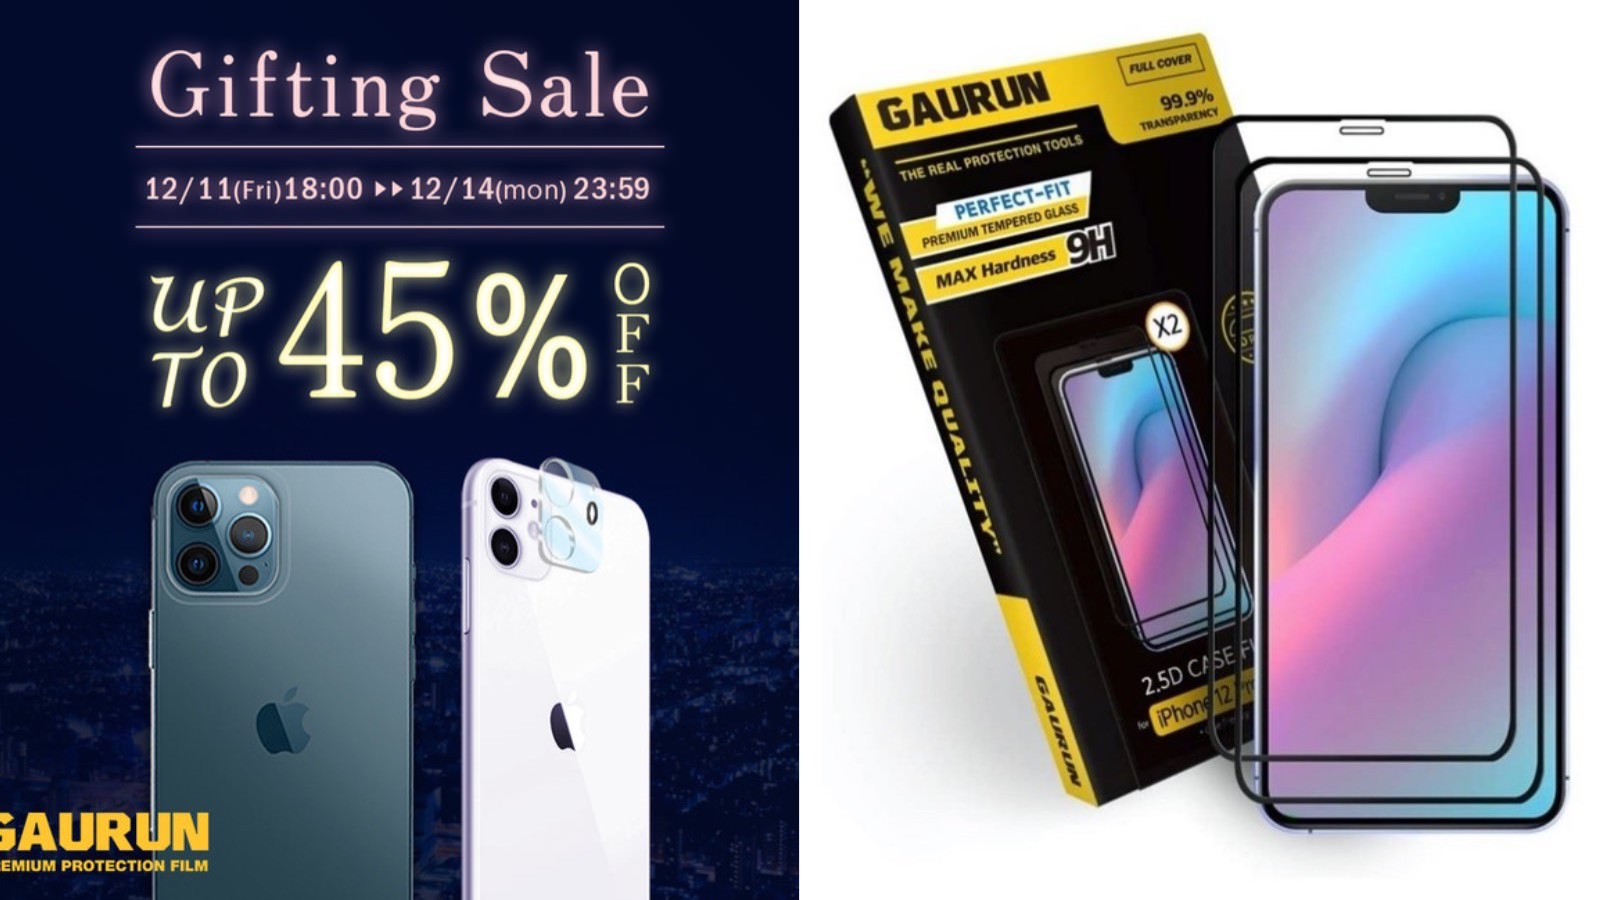 GAURUN Protection Film Sale